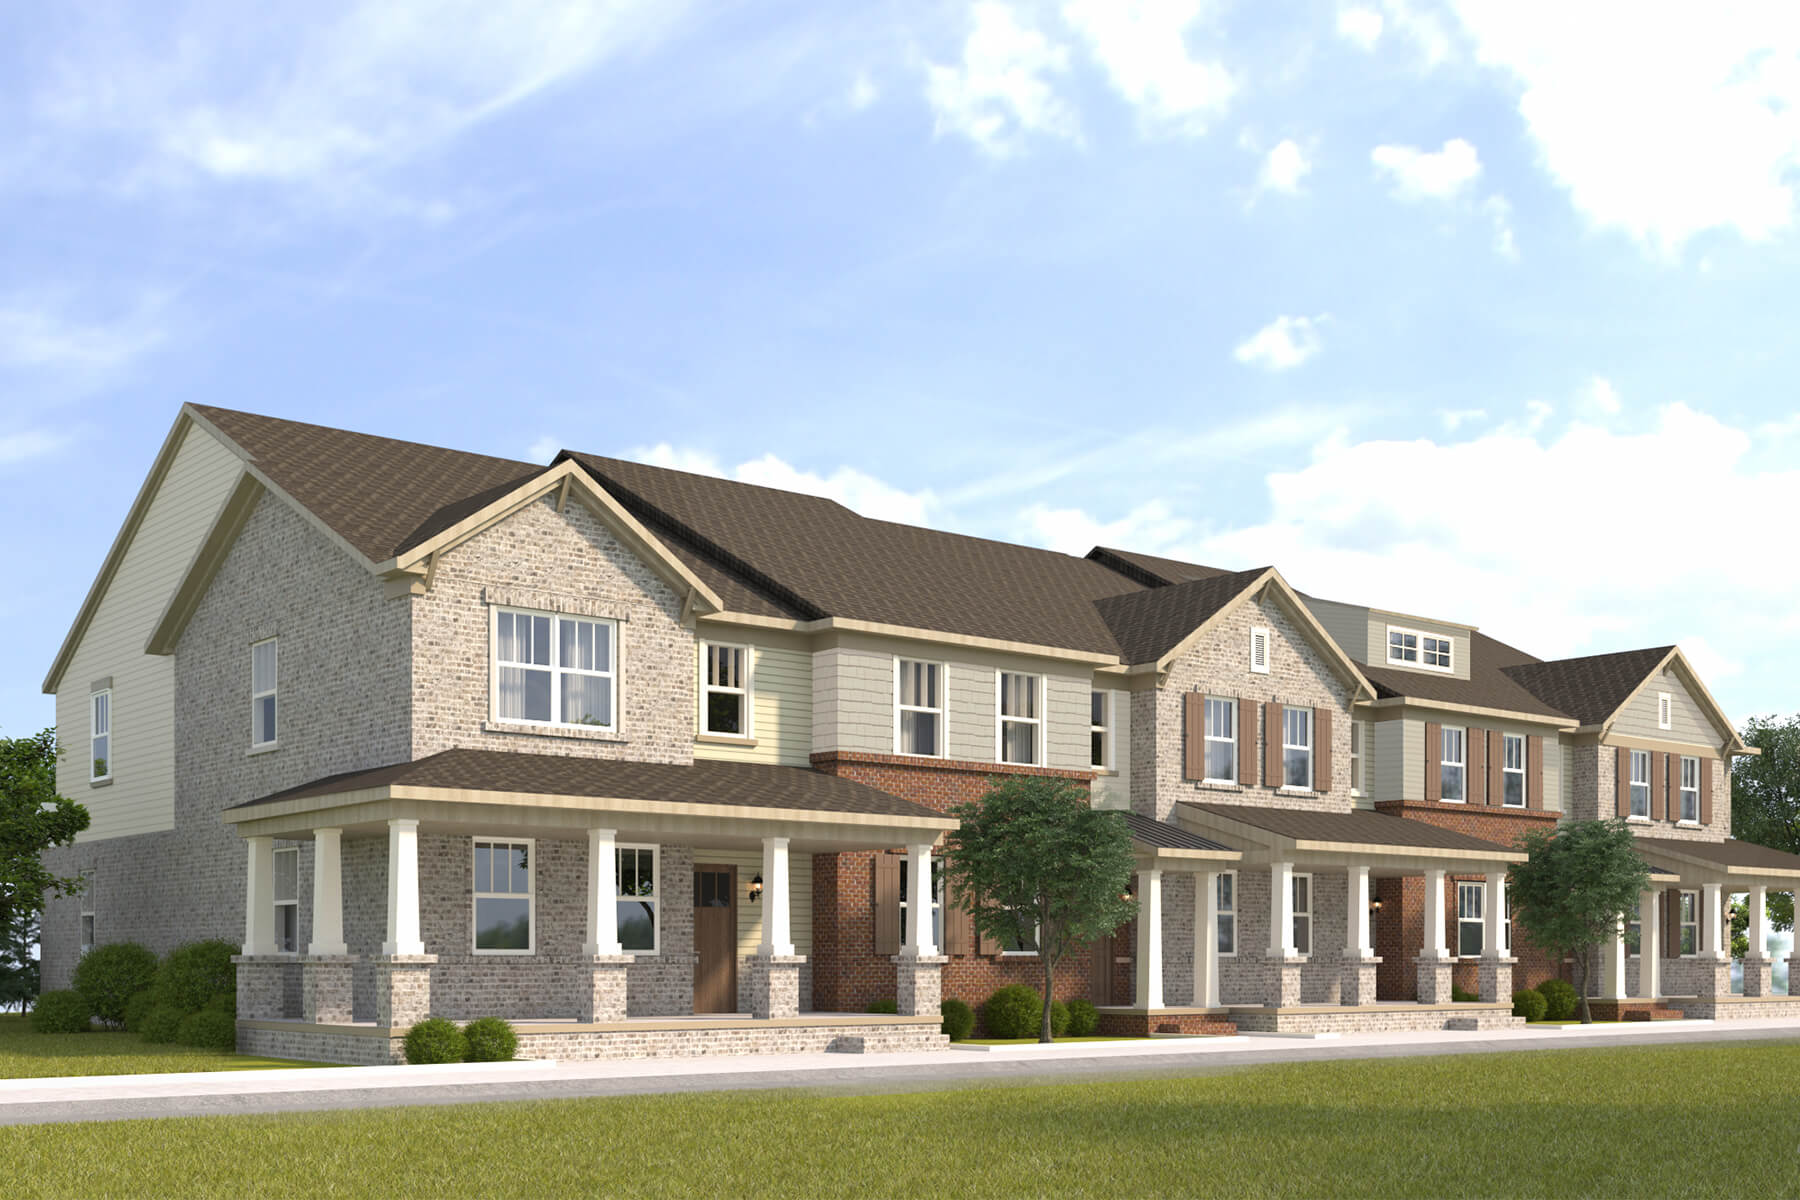 Luxury Villas and Townhomes for Lease by 360 Communities - Durham Farms New Homes for Sale in Hendersonville, TN